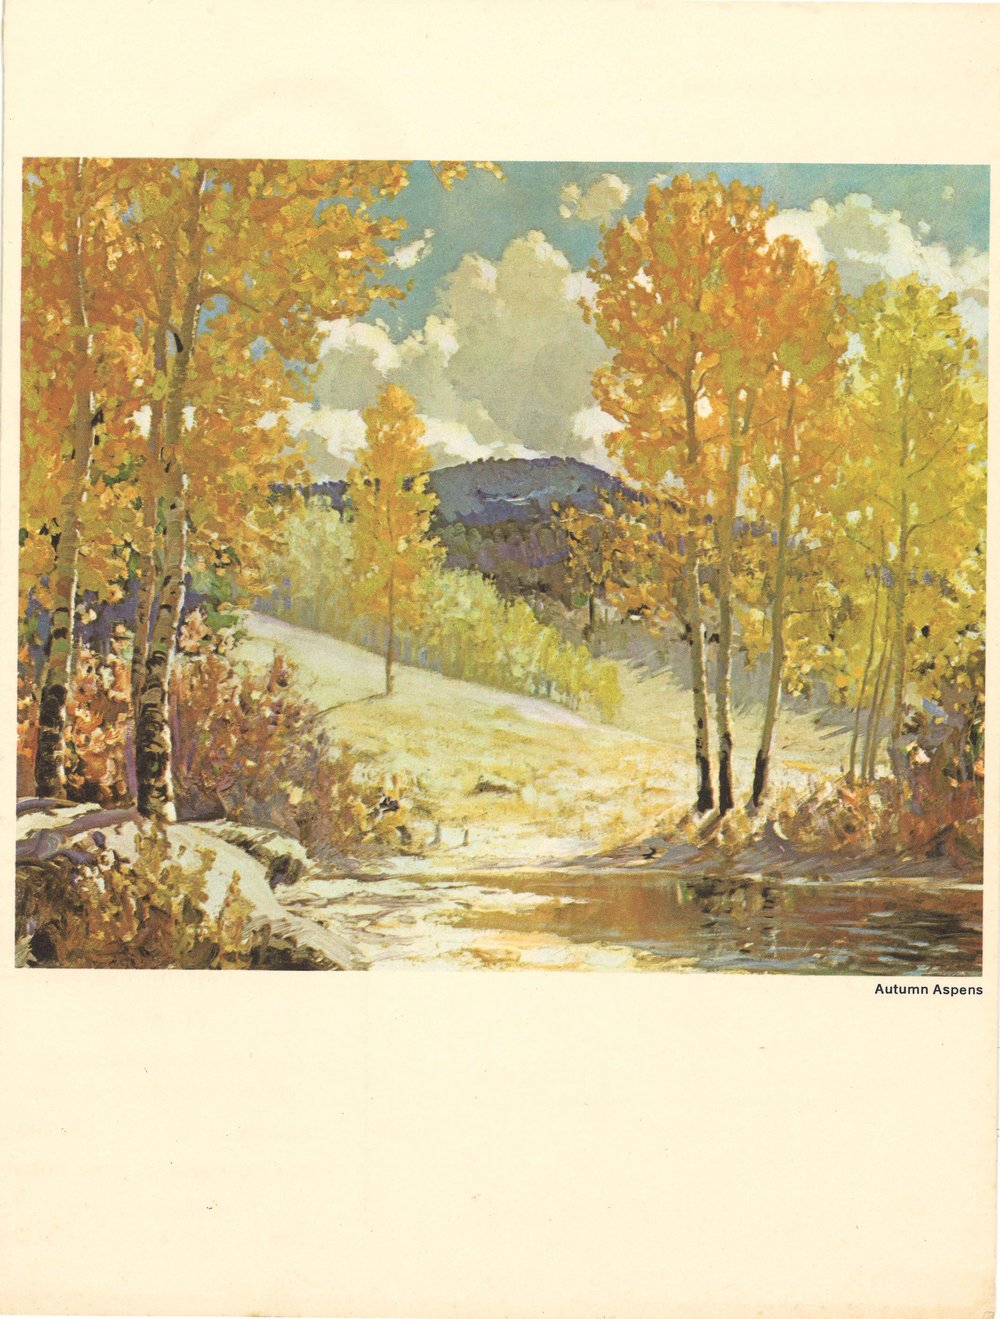 Santa Fe Autumn Aspens Dinner Menu 1 small.jpg